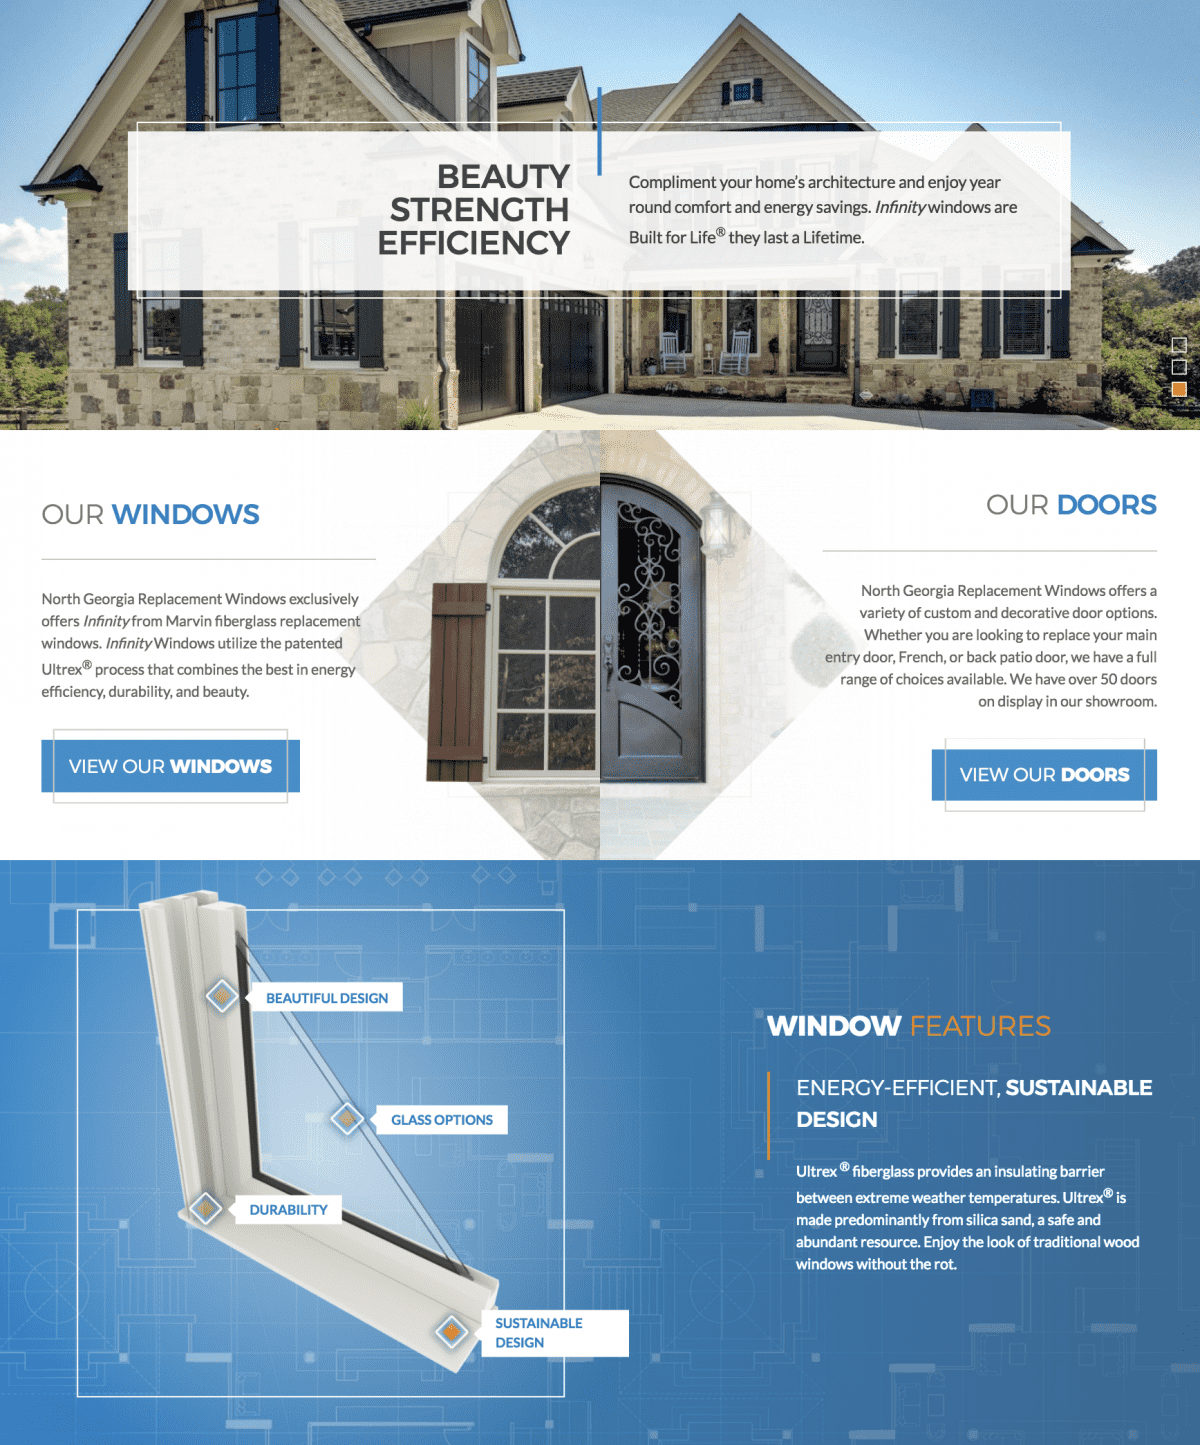 Image of website for North Georgia Replacement Windows